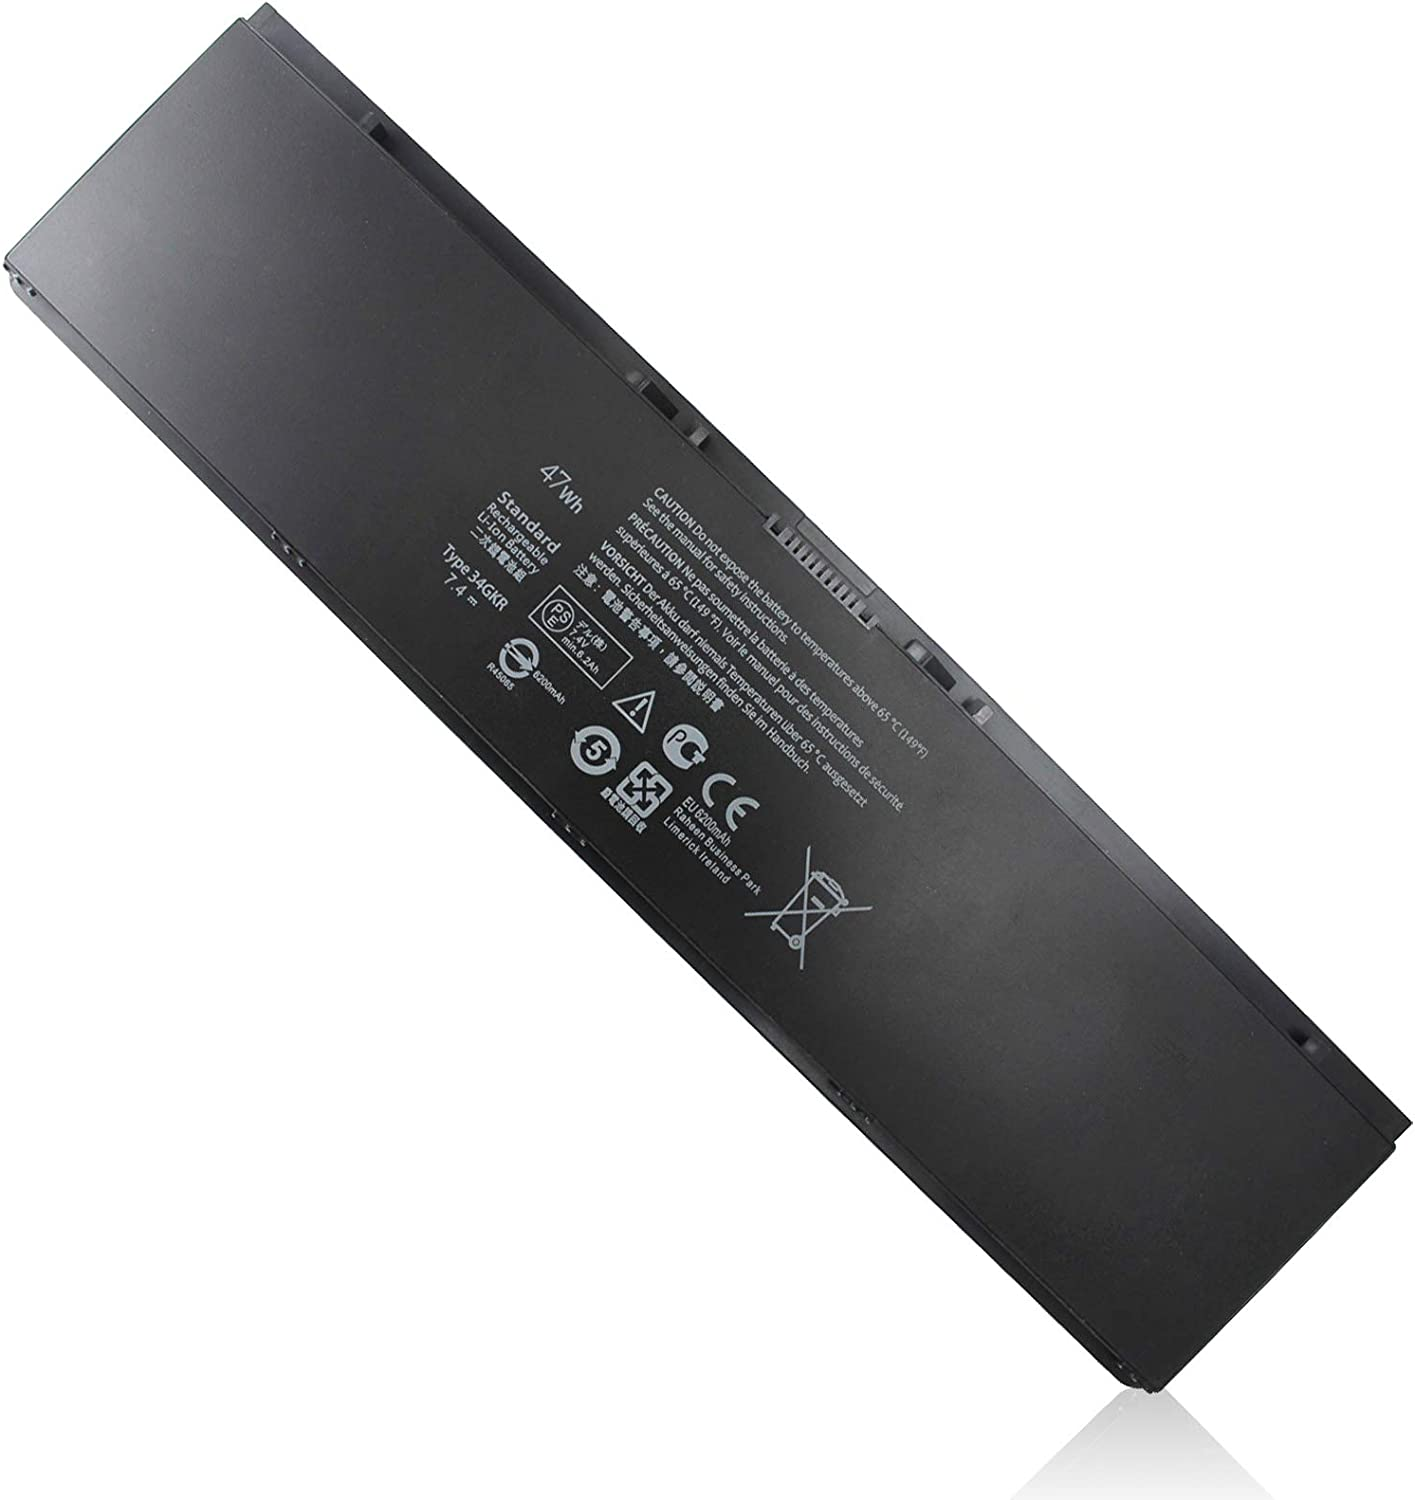 7.4V 47Wh 34GKR E7440 Laptop Battery Compatible with Dell Latitude E7440 E7450 3RNFD 451-BBFV G0G2M F38HT PFXCR T19VW E225846 0909H5 0G95J5 451-BBFS 451-BBFY V8XN3 5K1GW 4-Cell Battery Replacement New